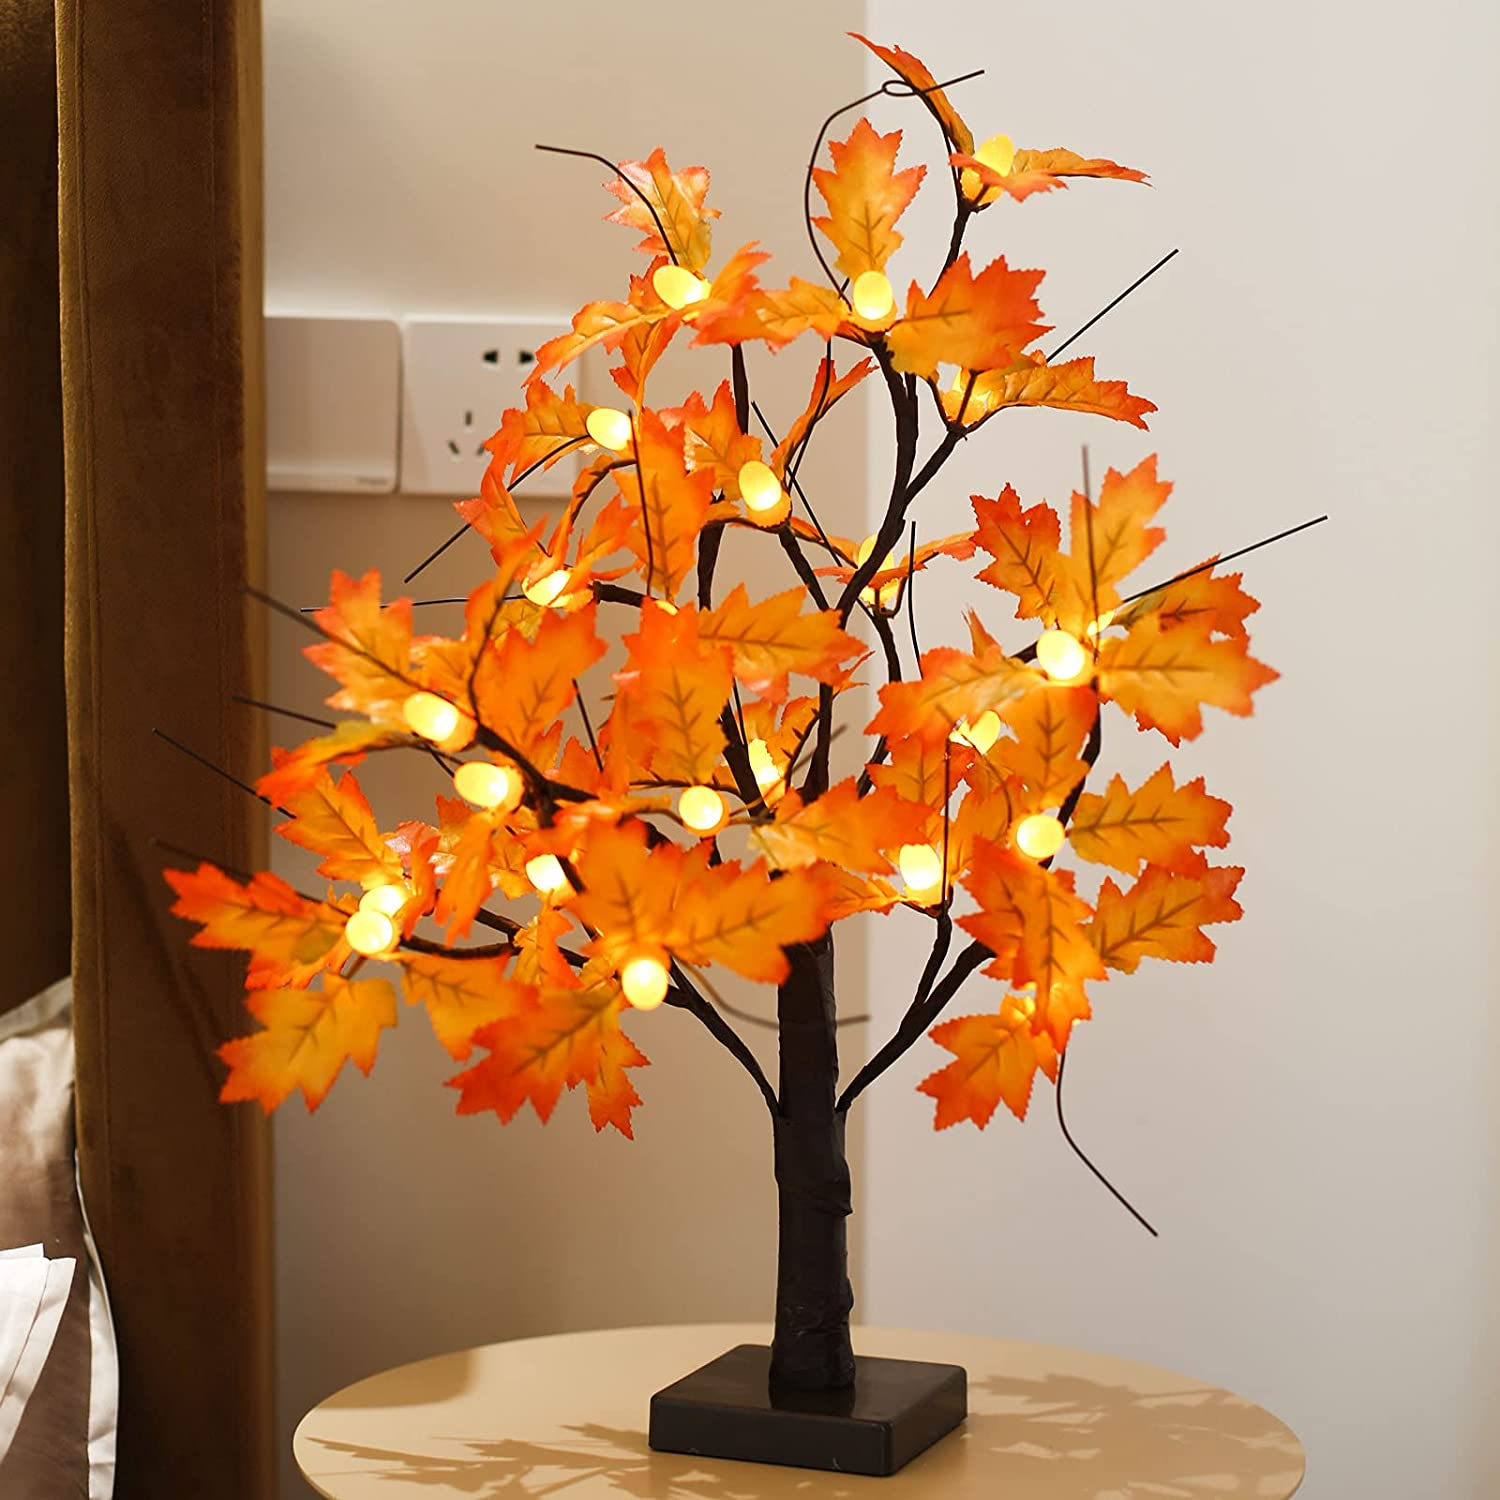 20-inch Fall Lighted Maple Tree, 24 Acorns LED Lights, Battery Operated Thanksgiving Table Decoration Tree, DIY Artificial Tree for Home Desktop Fireplace Autumn Harvest Tabletop Indoor Decor